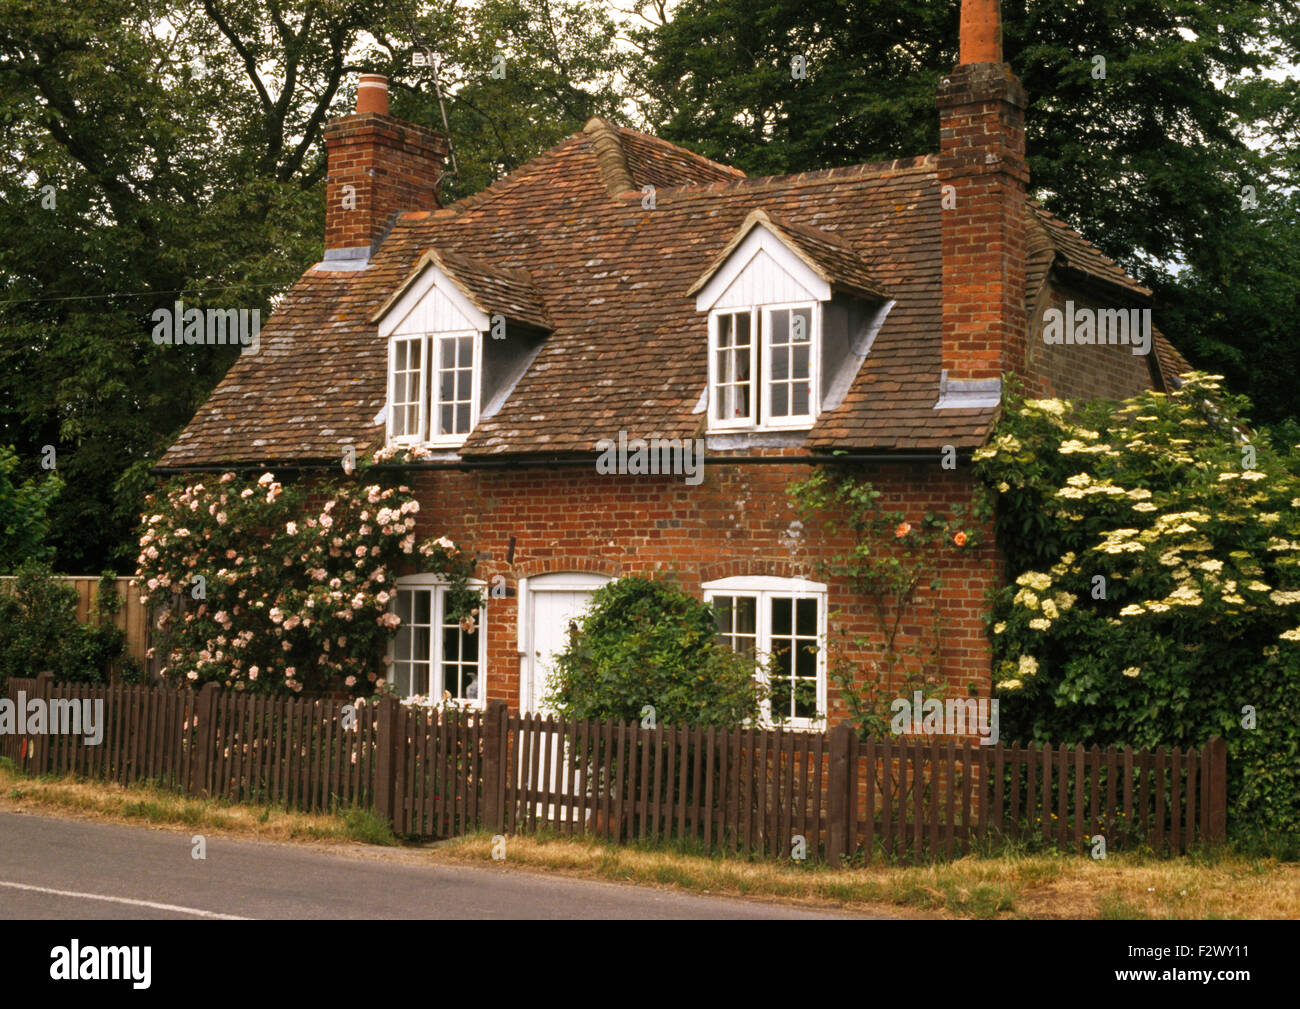 Wooden Picket Fence Bordering Cottage With Climbing Roses